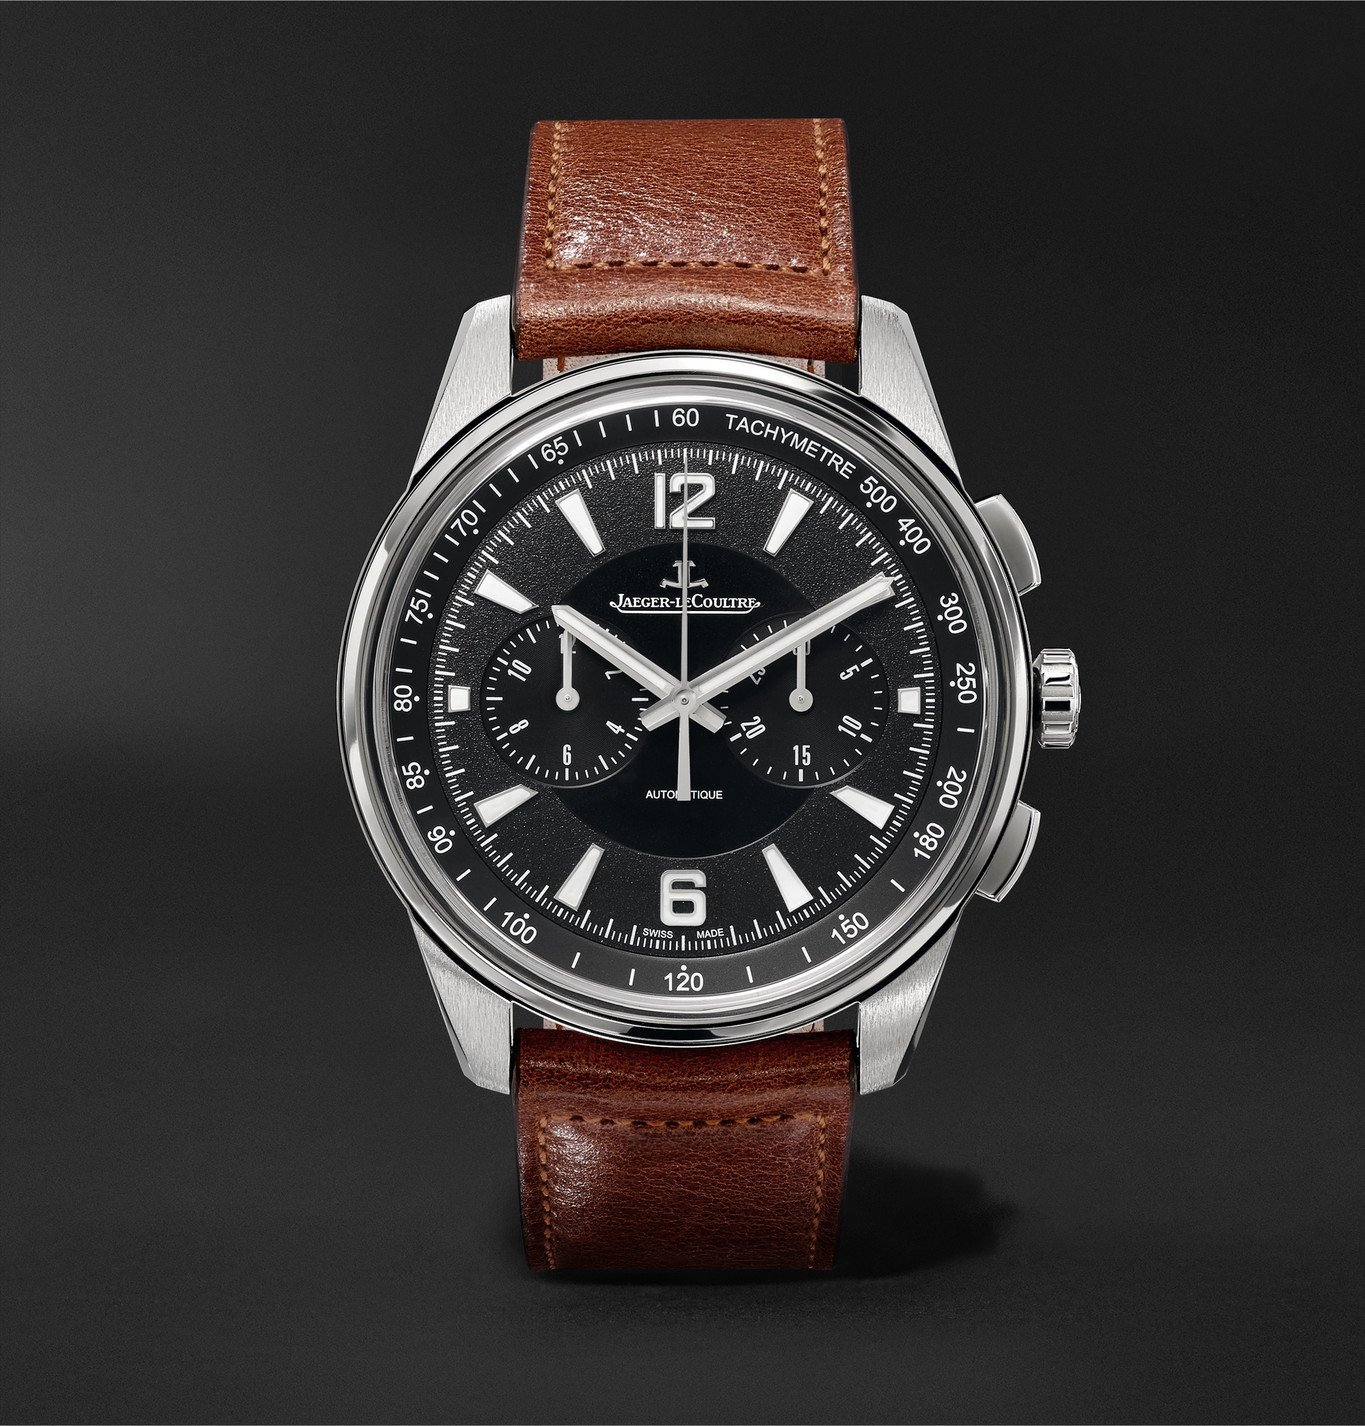 Photo: Jaeger-LeCoultre - Polaris Automatic Chronograph 42mm Stainless Steel and Leather Watch, Ref. No. Q9028471 - Black